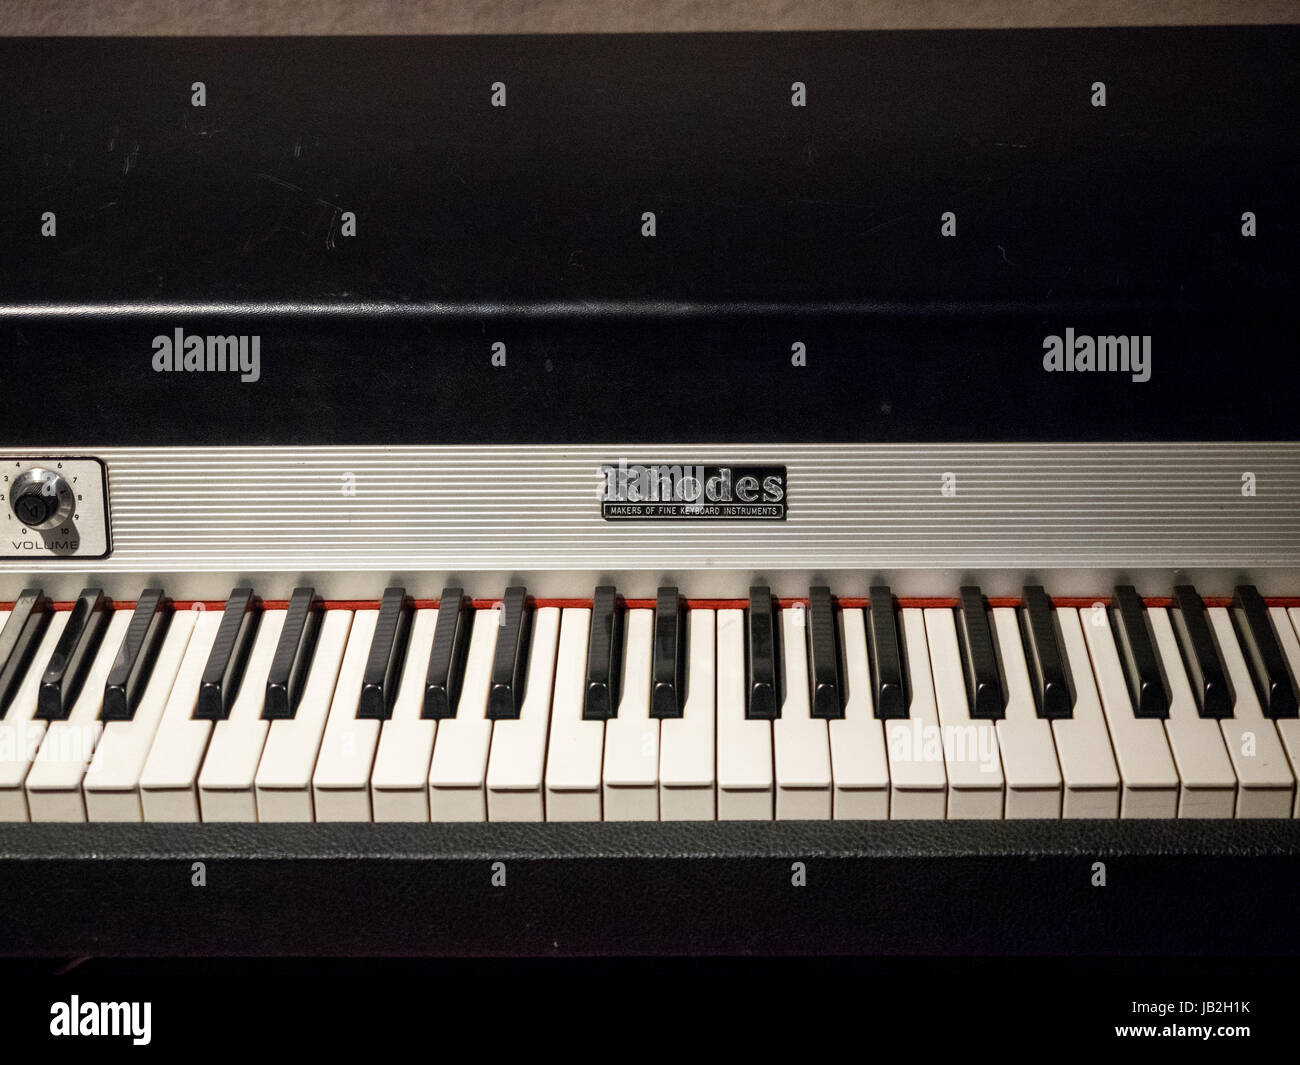 Rhodes Electric Piano at the RCA Victor recording studio in Nashville Tennessee where Elvis Presley recorded - Stock Image